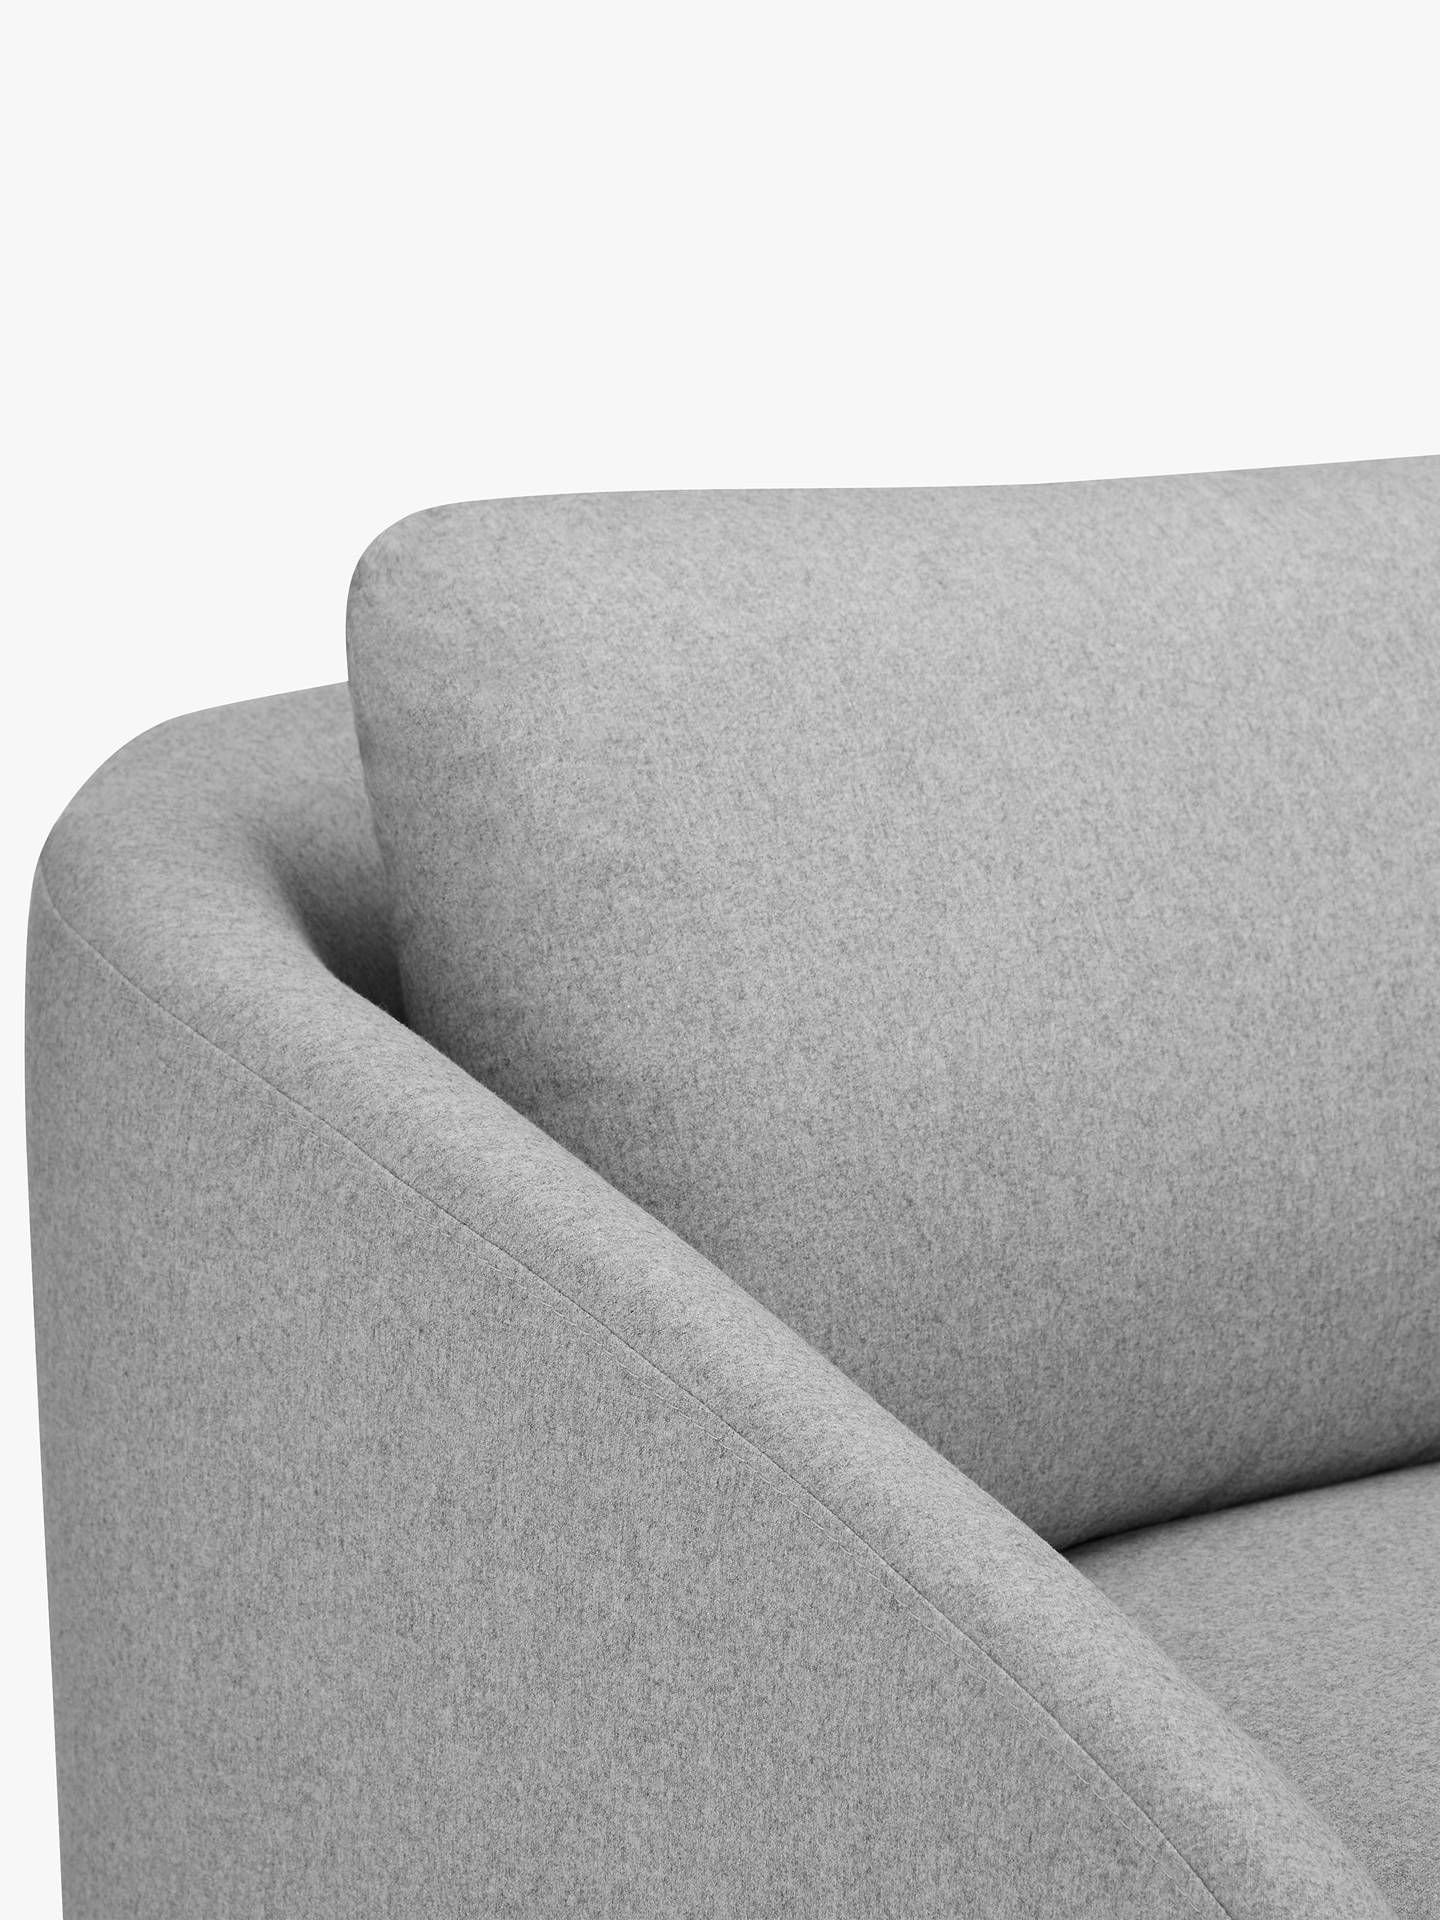 Outstanding John Lewis Partners Cape Large 3 Seater Sofa Machost Co Dining Chair Design Ideas Machostcouk